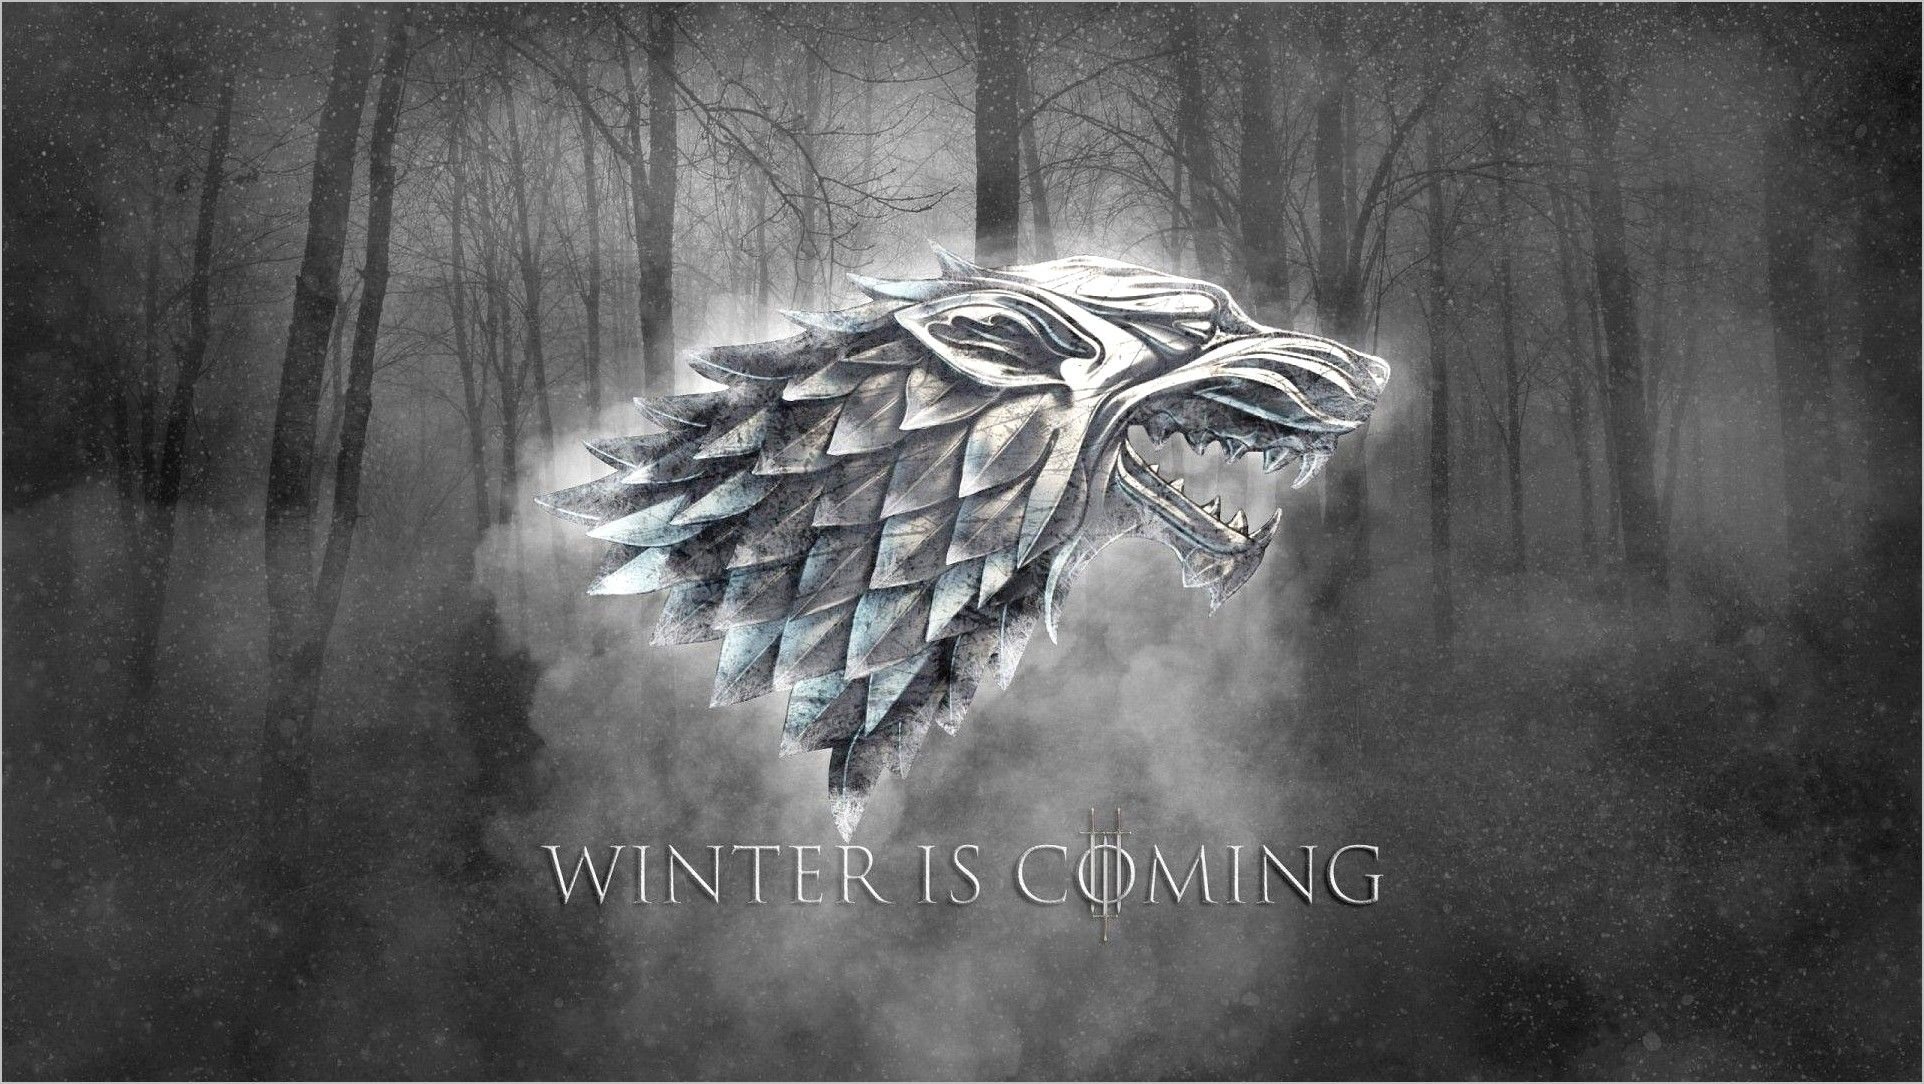 Game Of Thrones Houses Wallpaper 4k In 2020 Winter Is Coming Wallpaper Winter Is Coming Stark Best Movie Posters